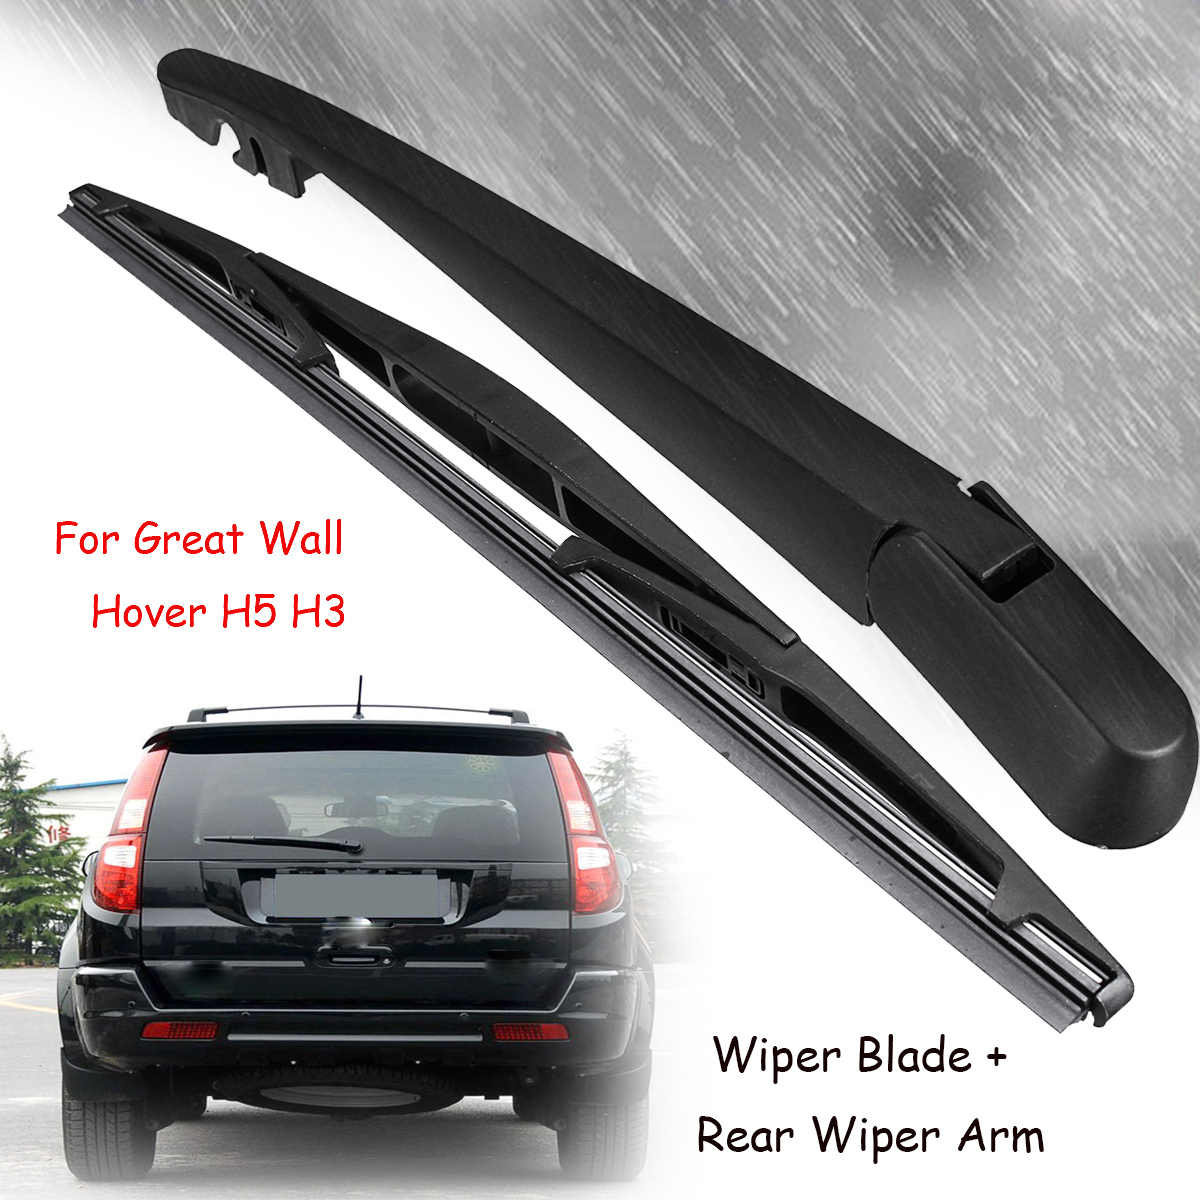 Car Windscreen Rear Wiper Blade Windshield Wiper Arm Blades For Great Wall Hover H5 H3 Car Accessories цены онлайн